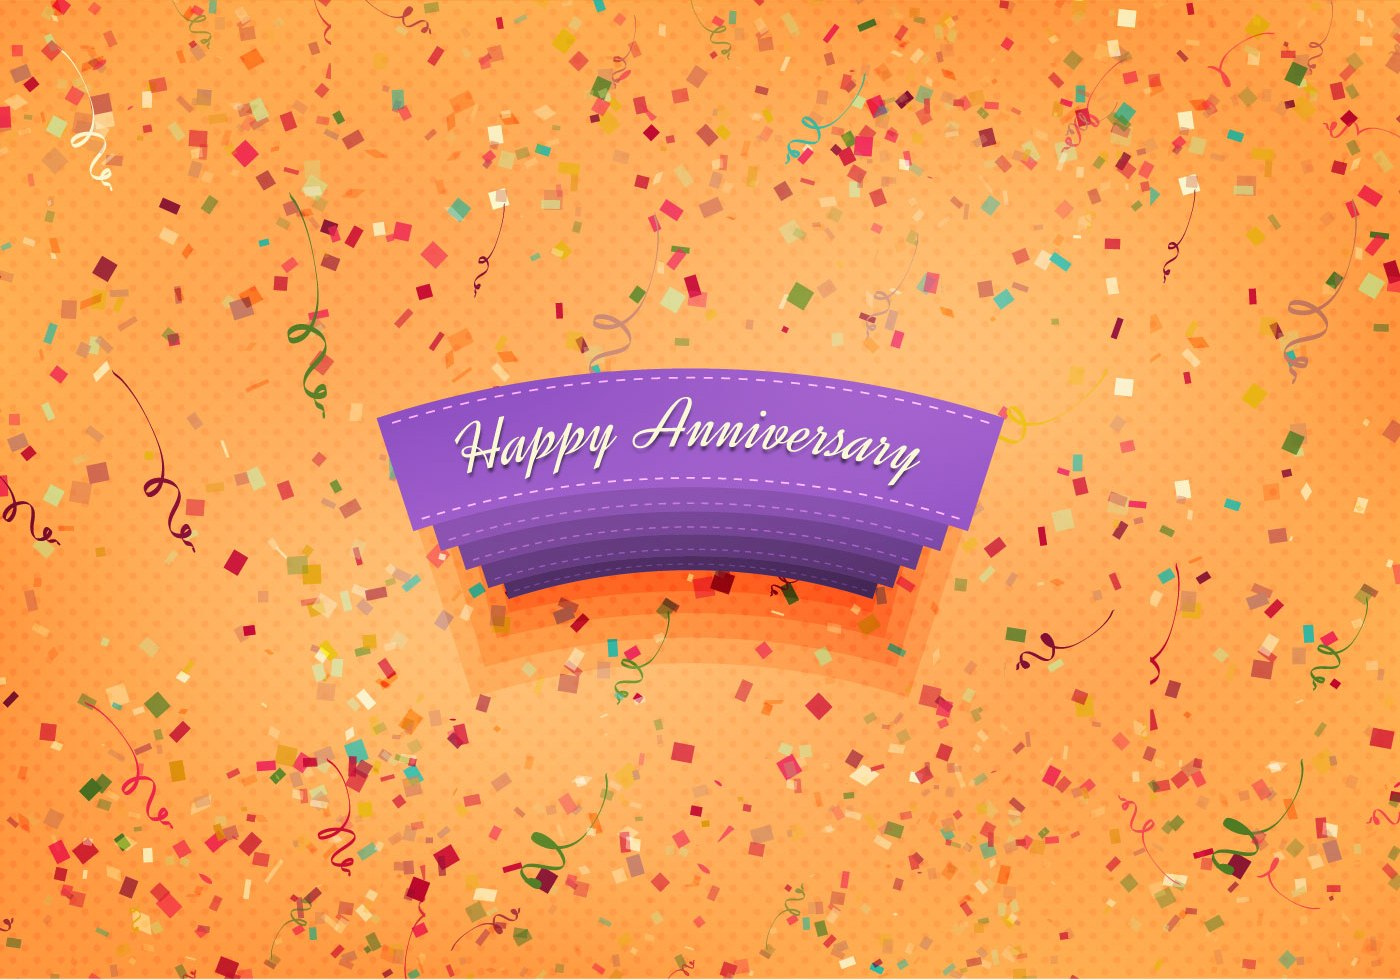 Free vector happy anniversary background download